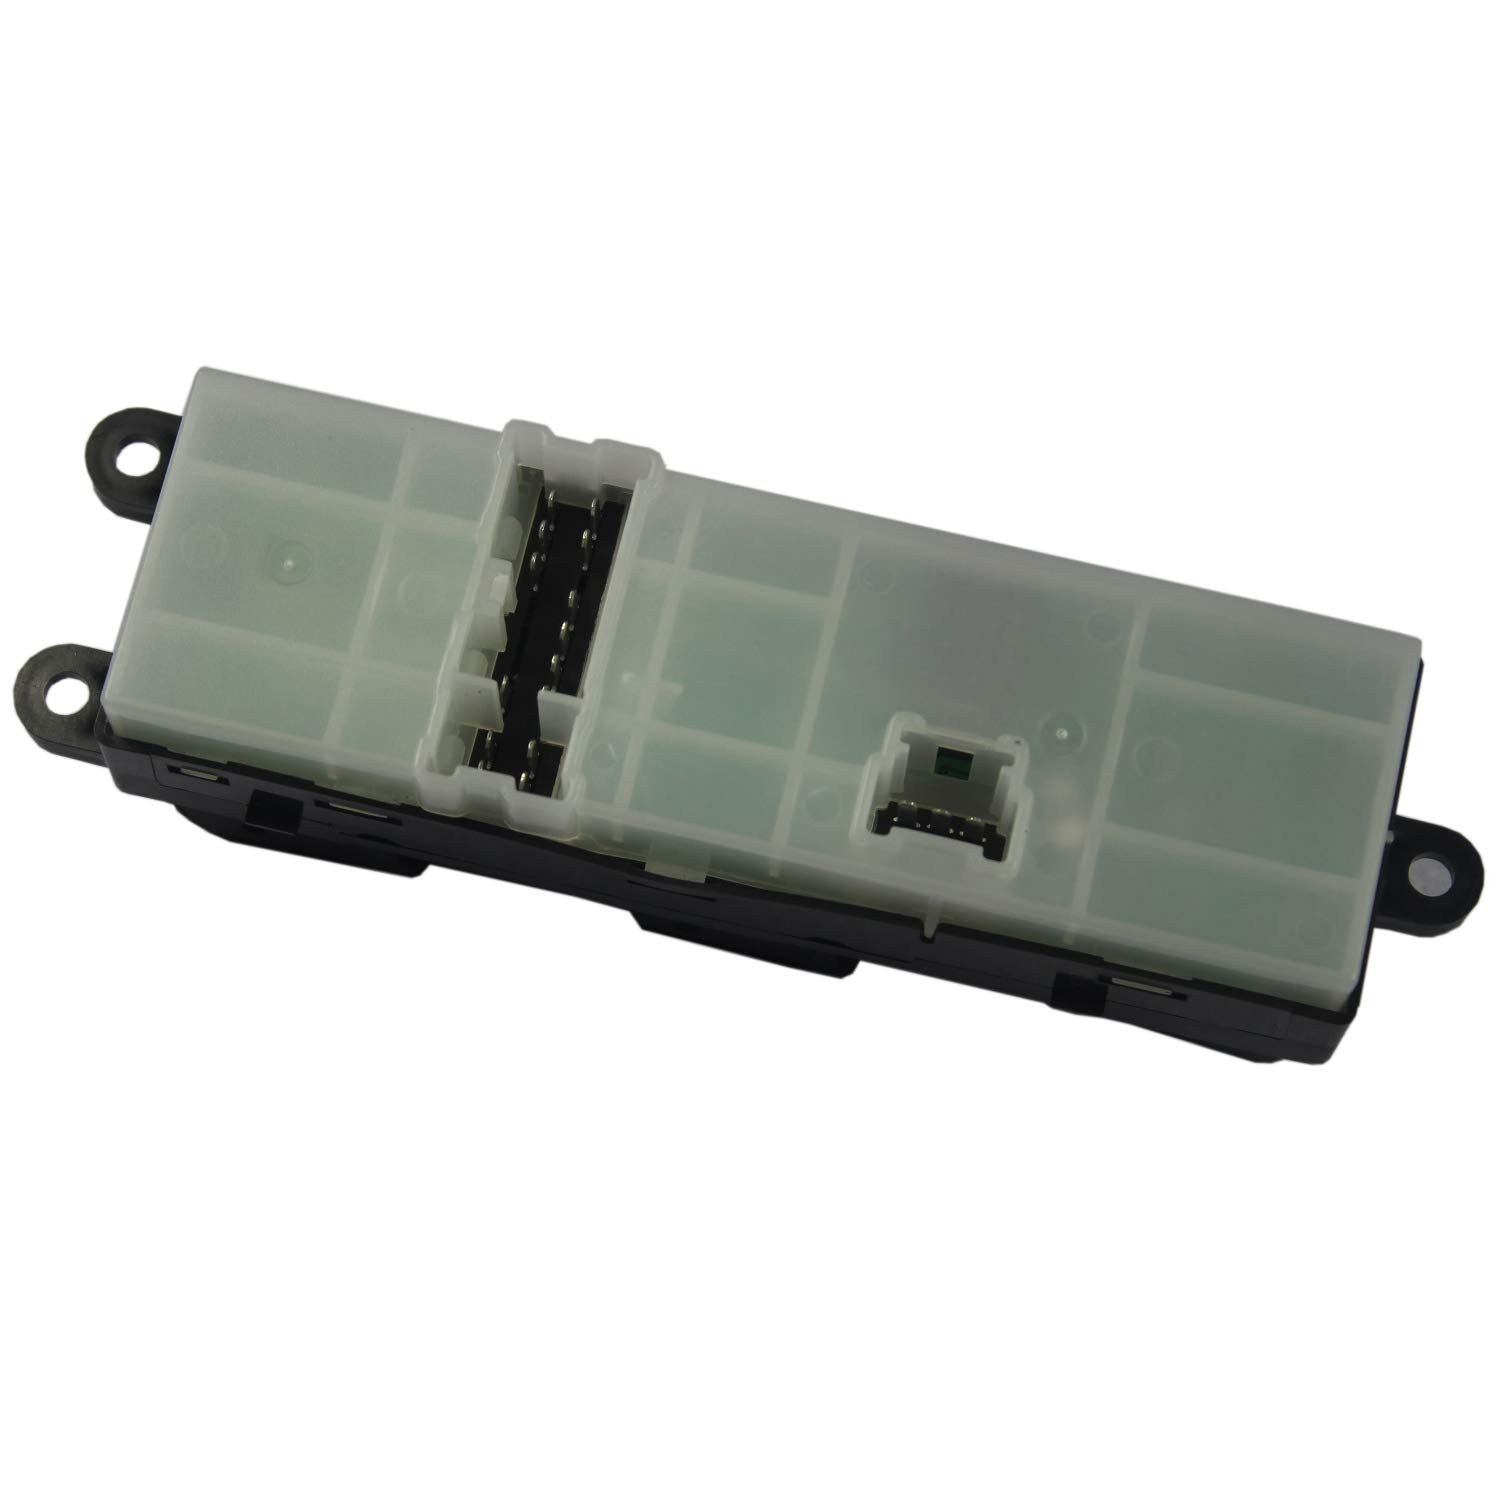 JDMSPEED New Electric Power Window Master Switch For Nissan Sentra 2008-2012 25401-ZJ60A